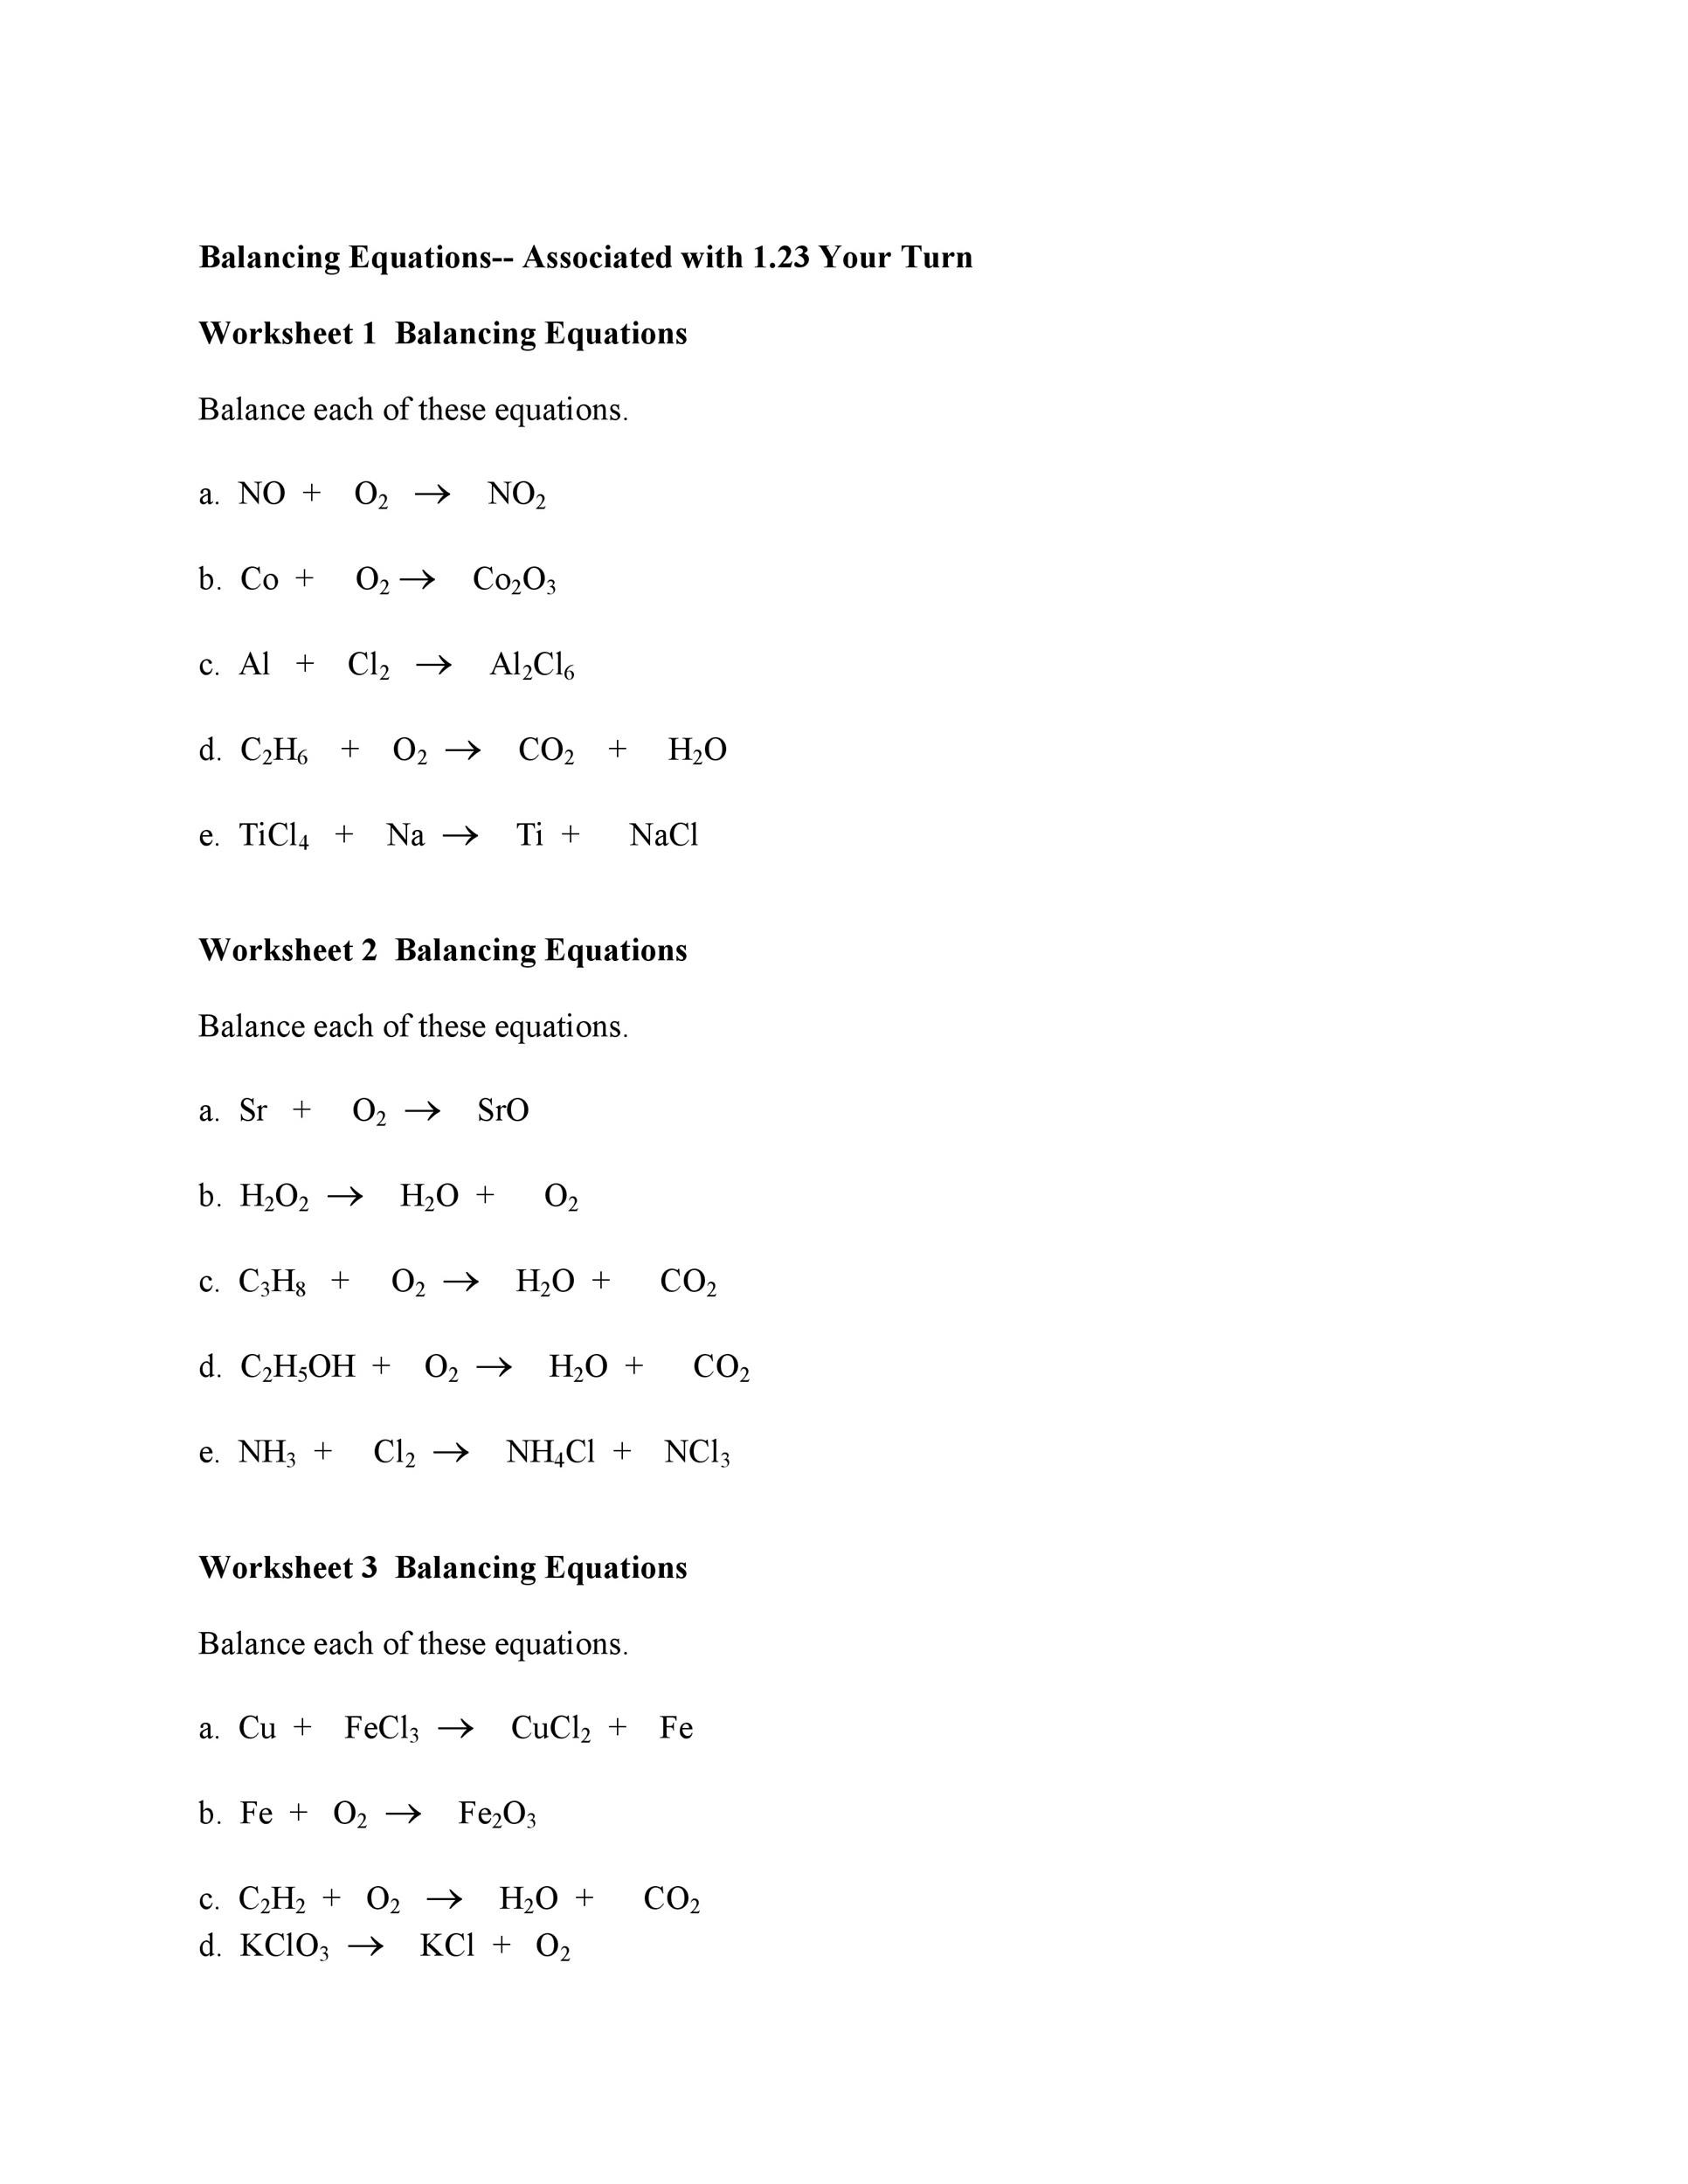 Worksheets Easy Balancing Equations Worksheet tips for balancing equations jennarocca 49 chemical worksheets with answers